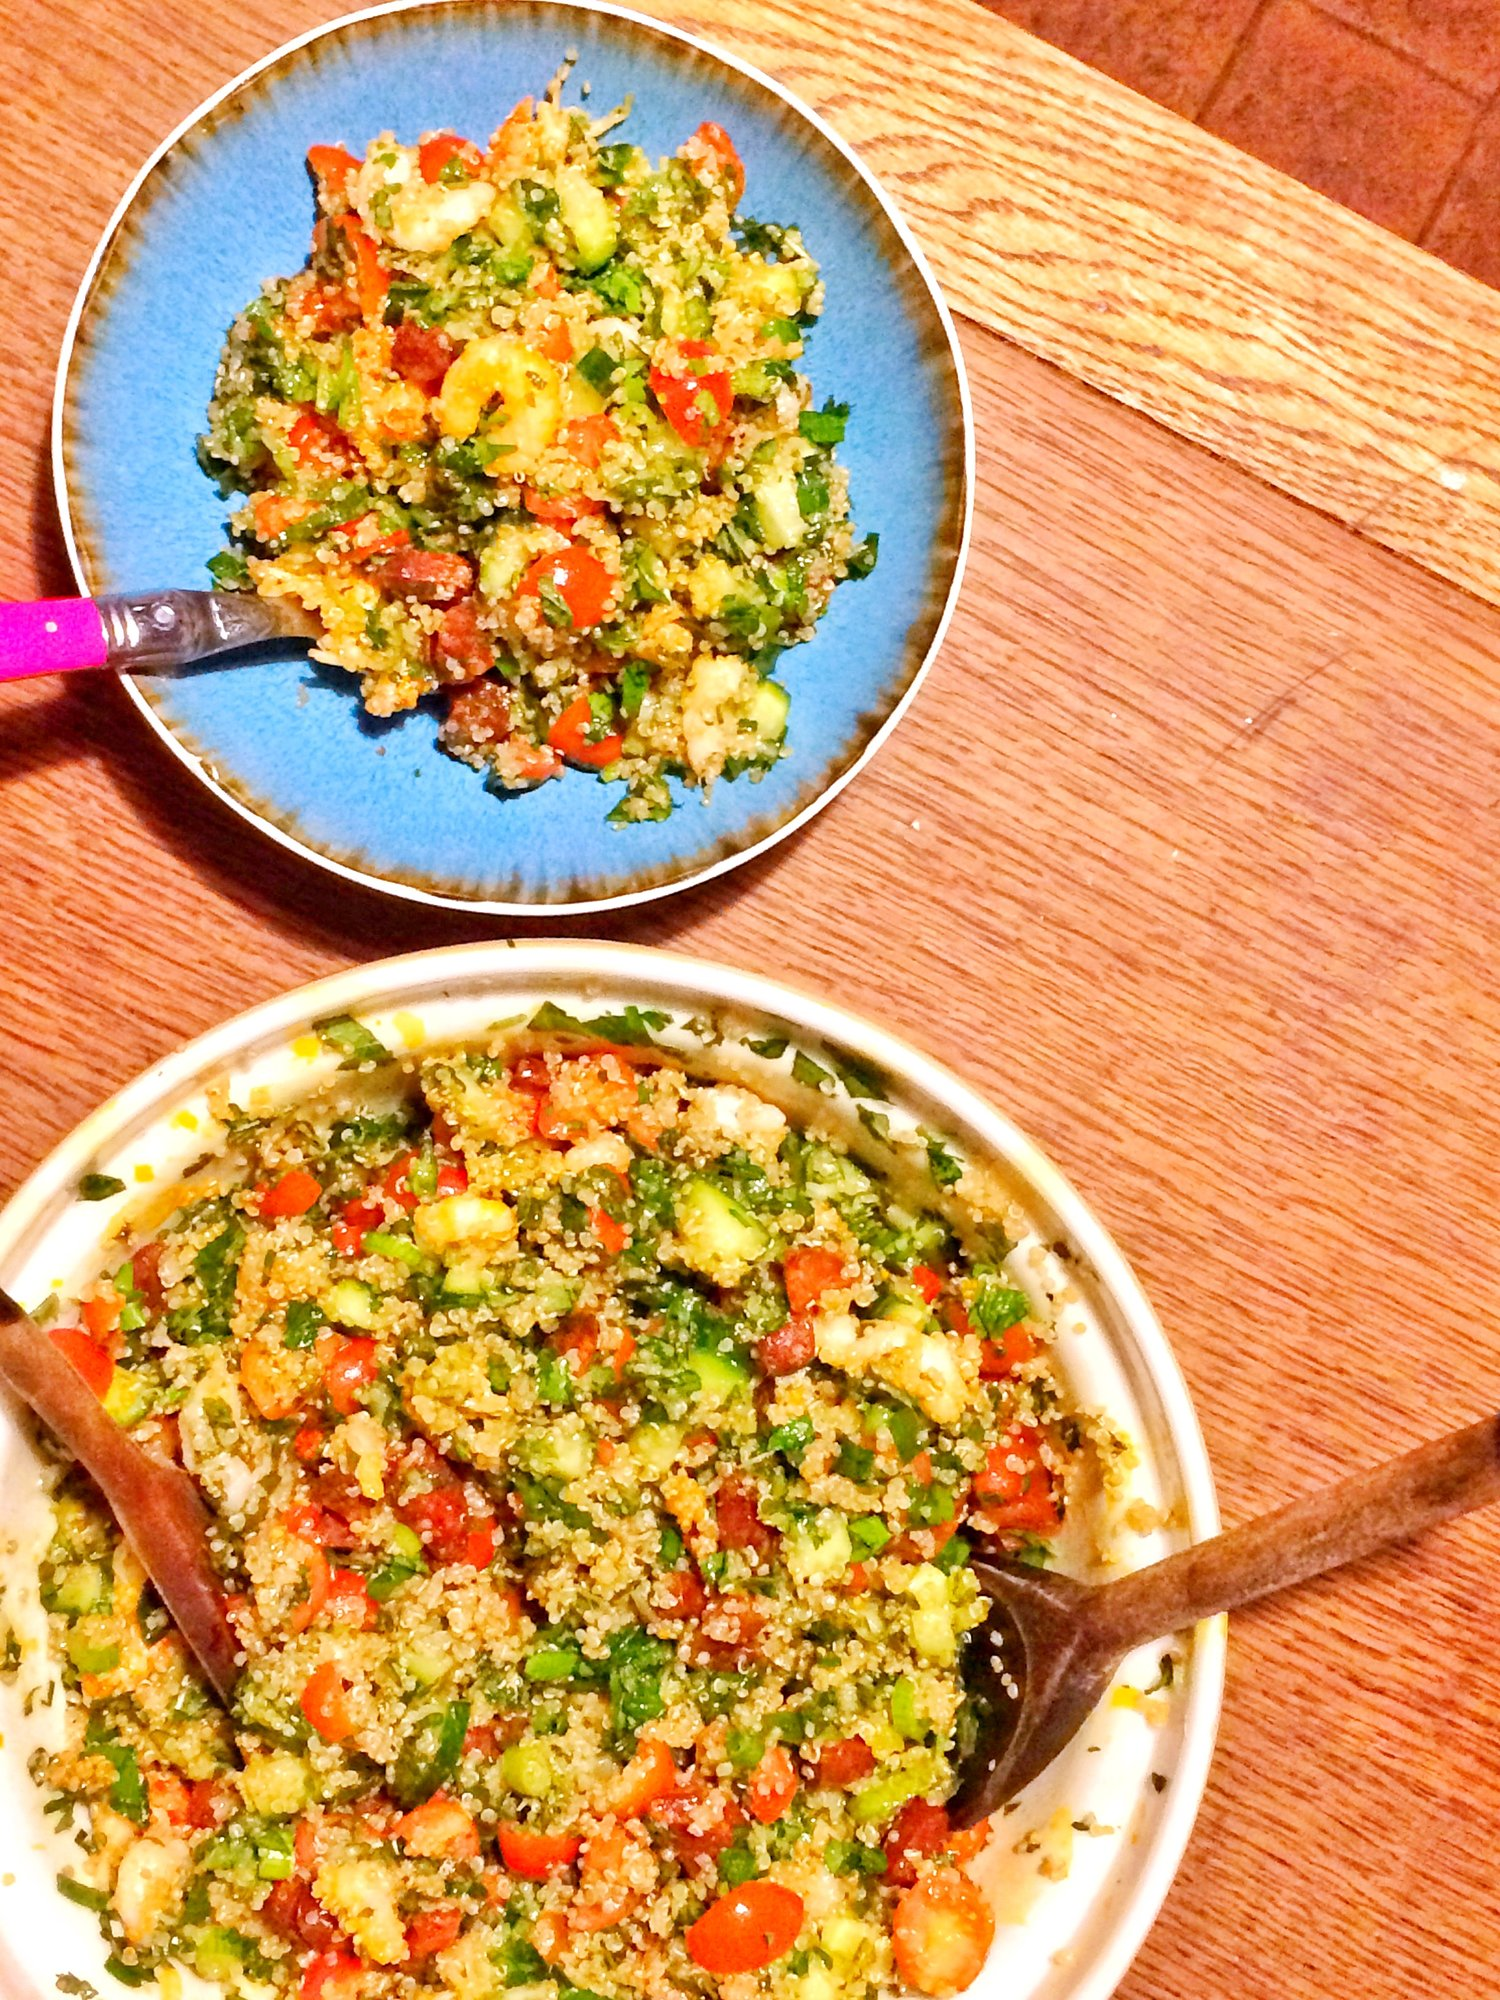 Fresh, filling and delicious prawn tabbouleh